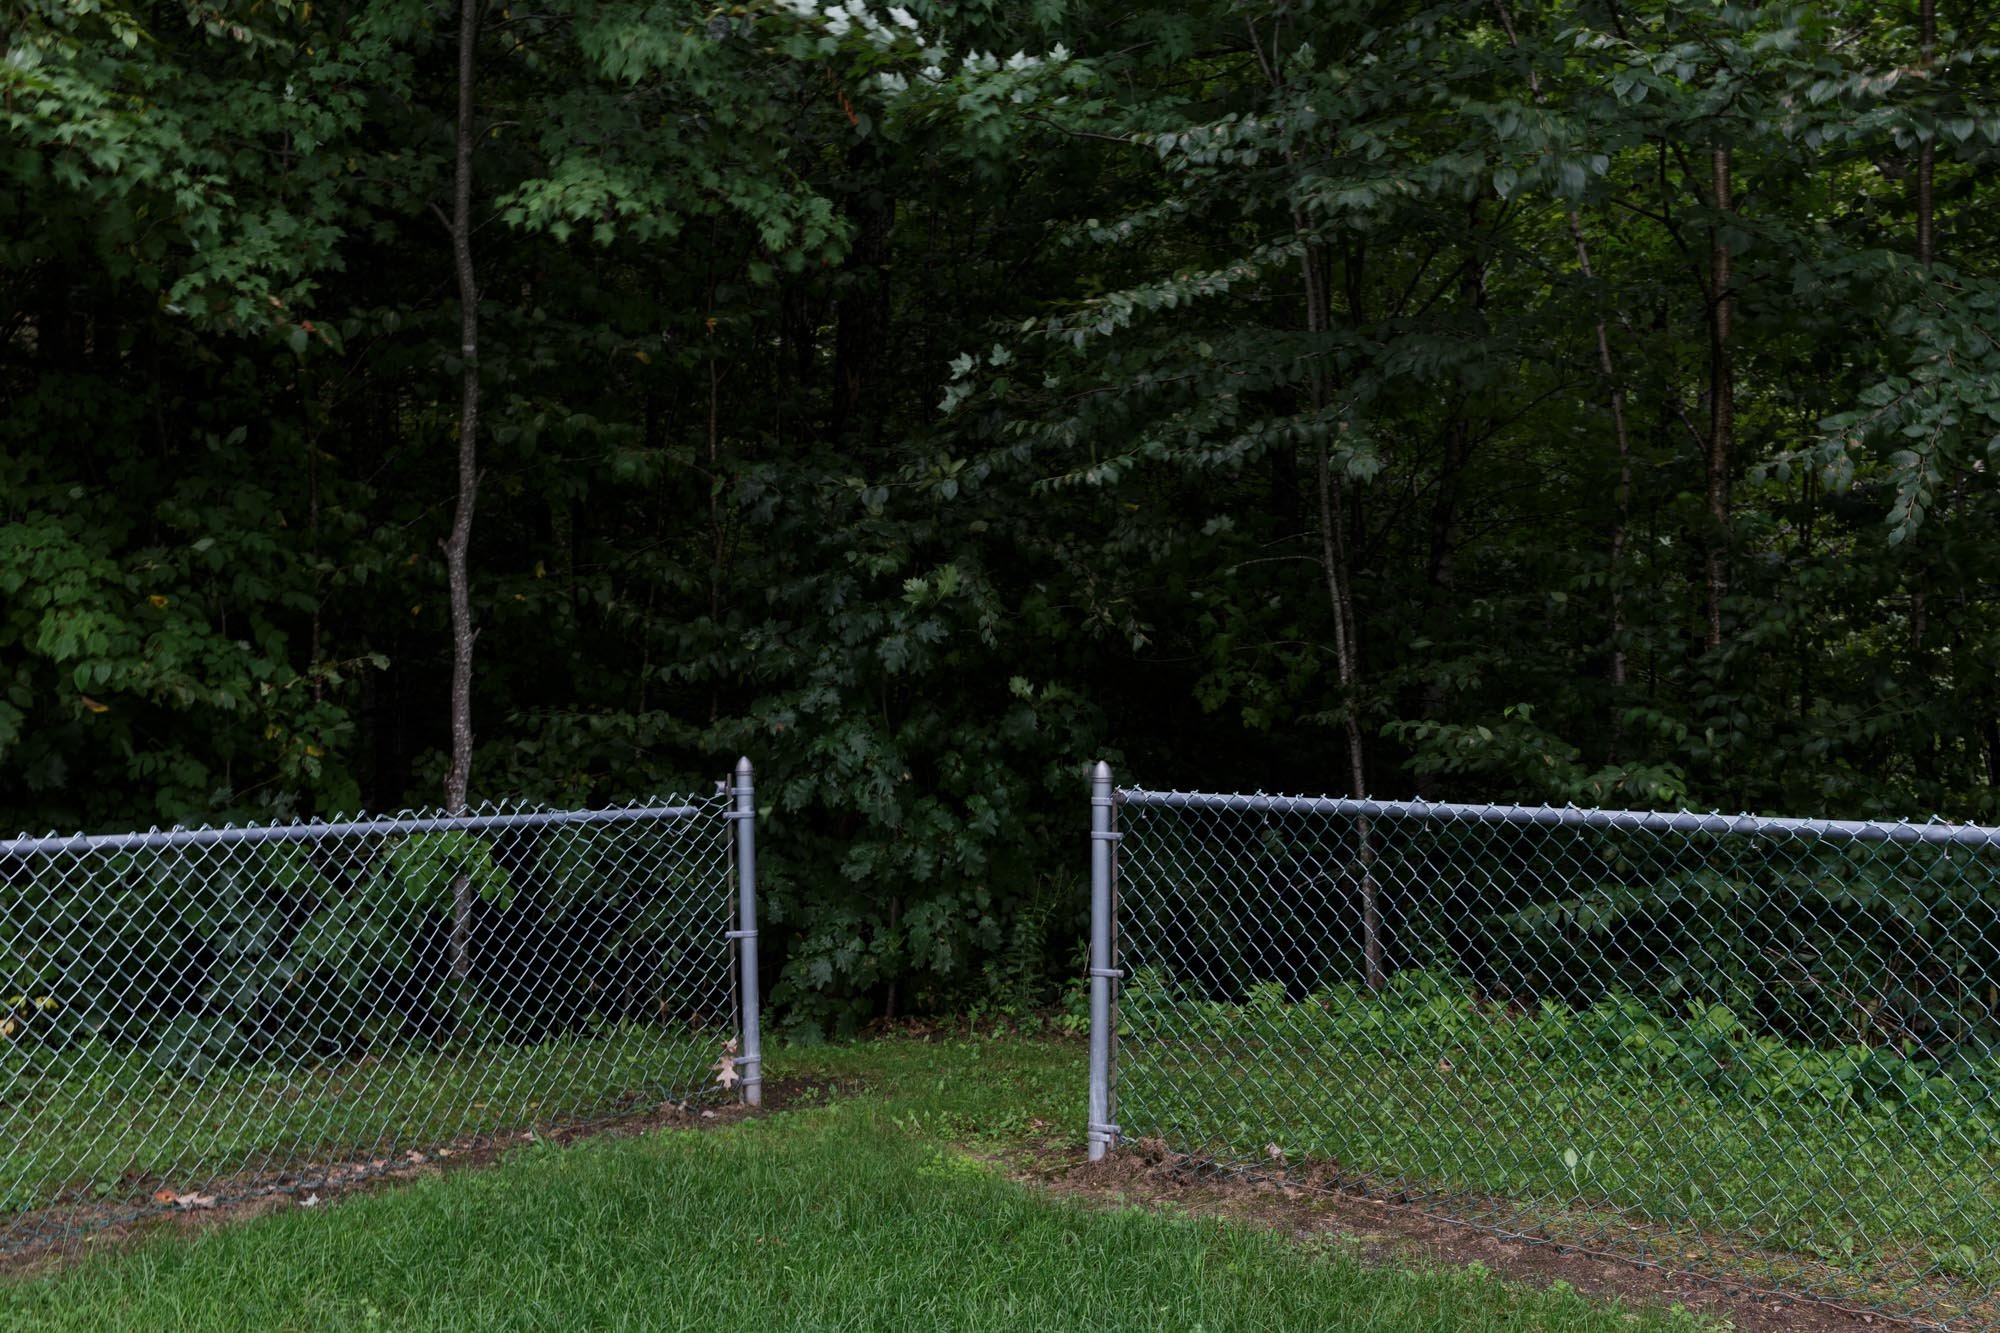 Fence in Front of Trees